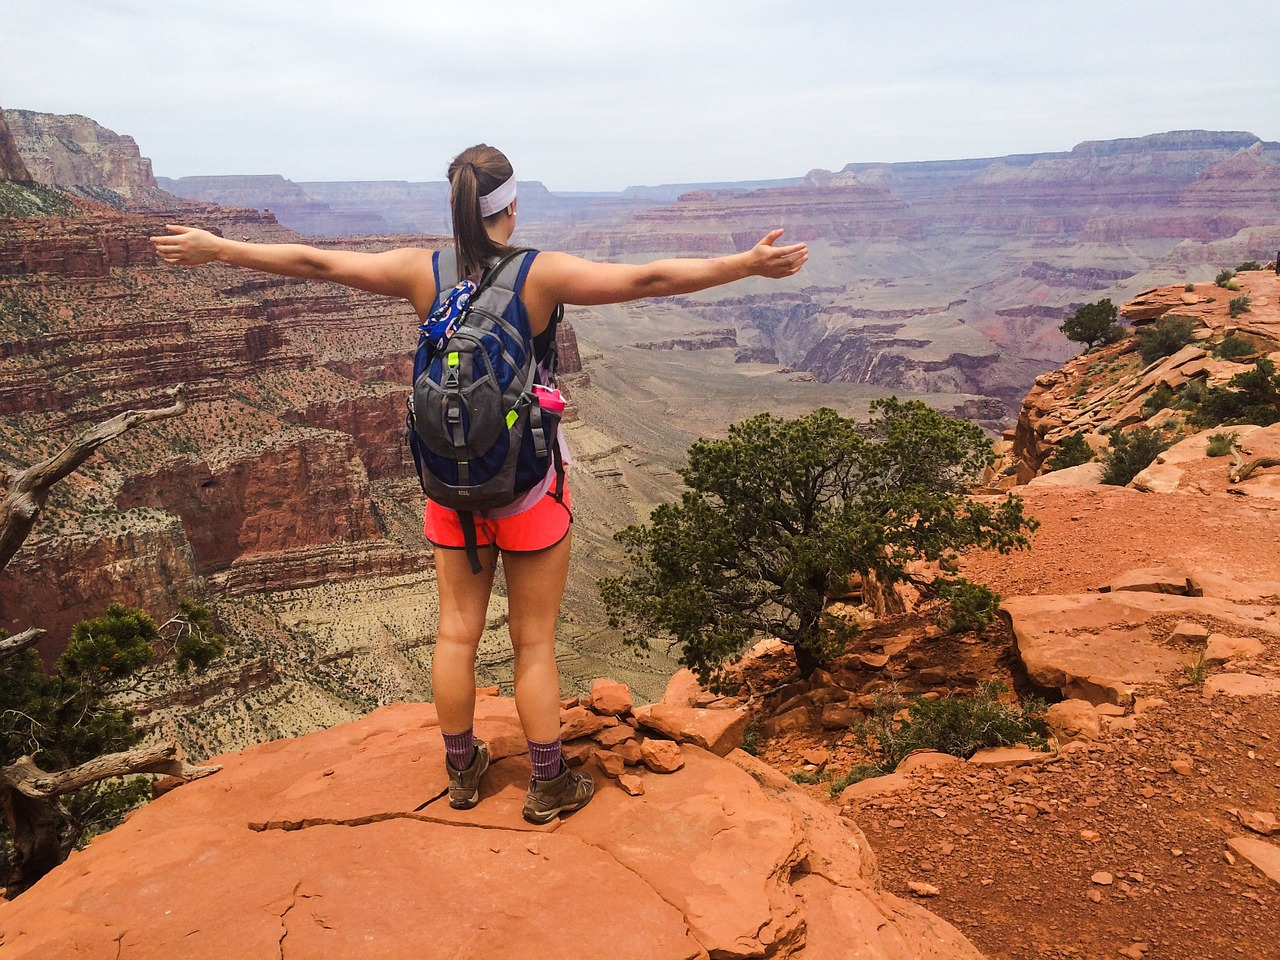 About Grand Canyon